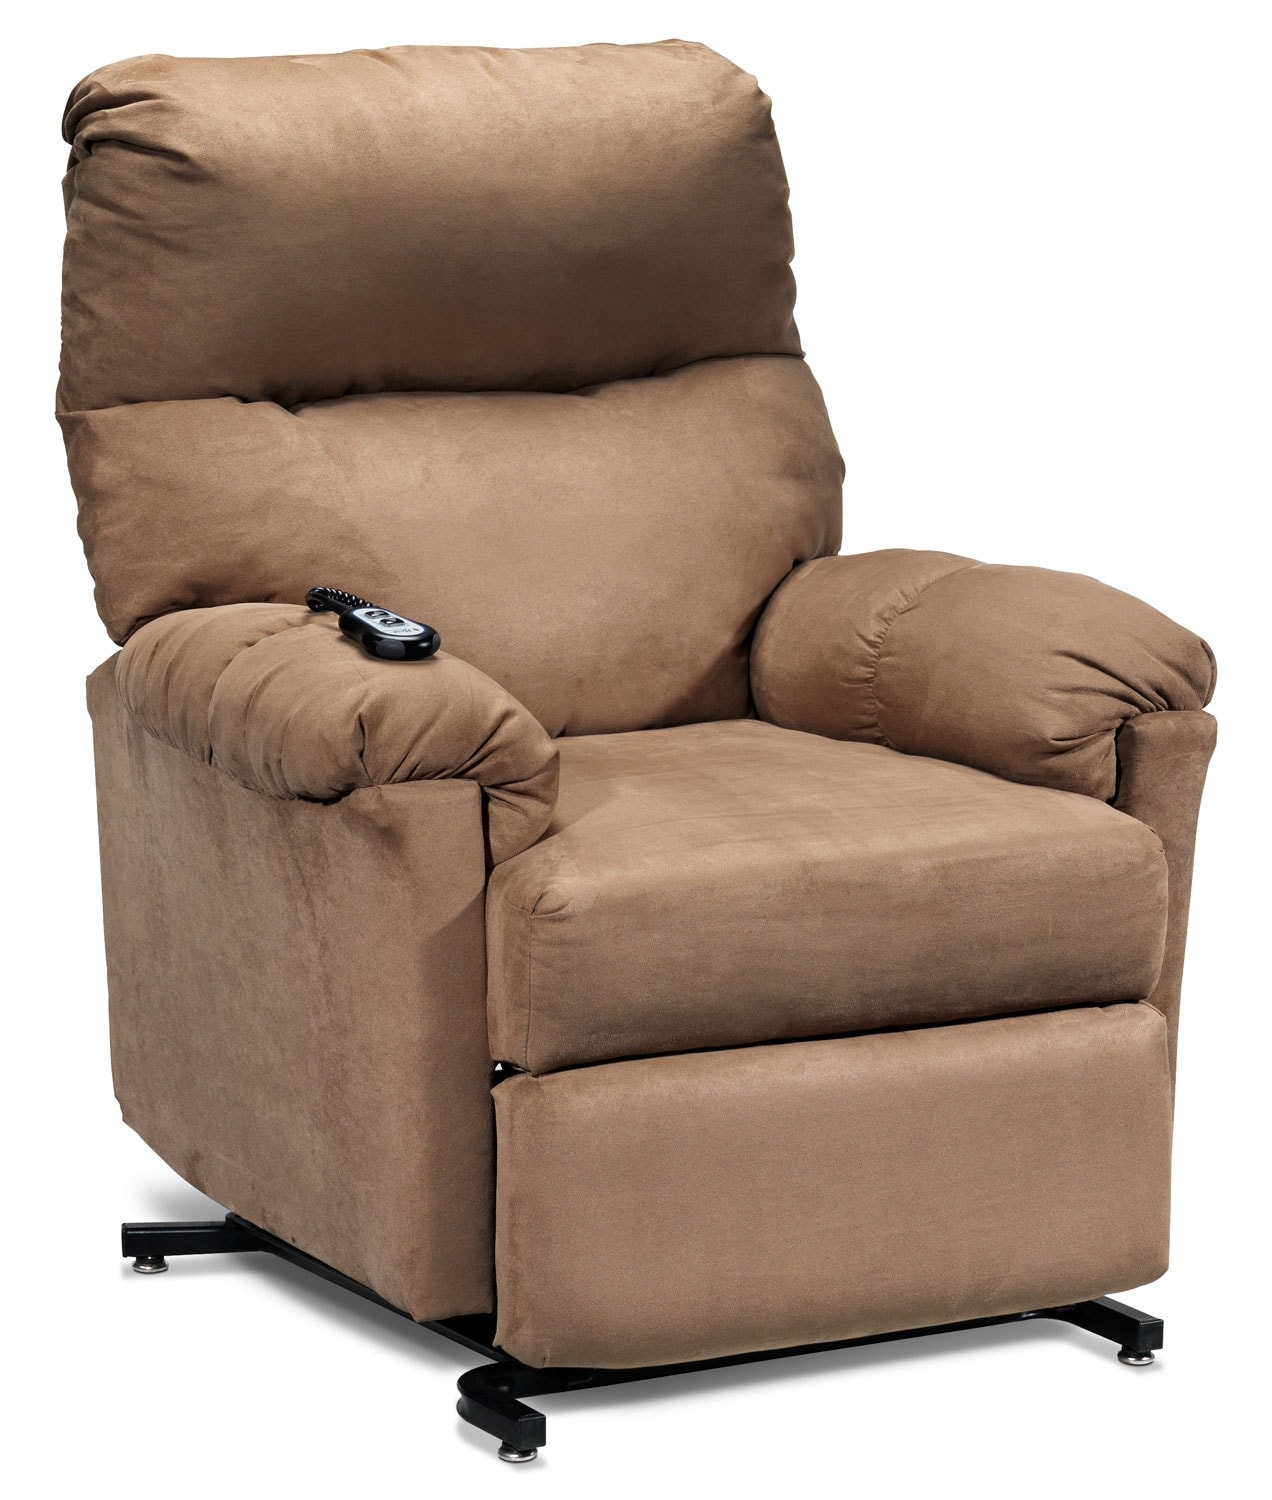 [Ridgeville Power Lift Recliner]